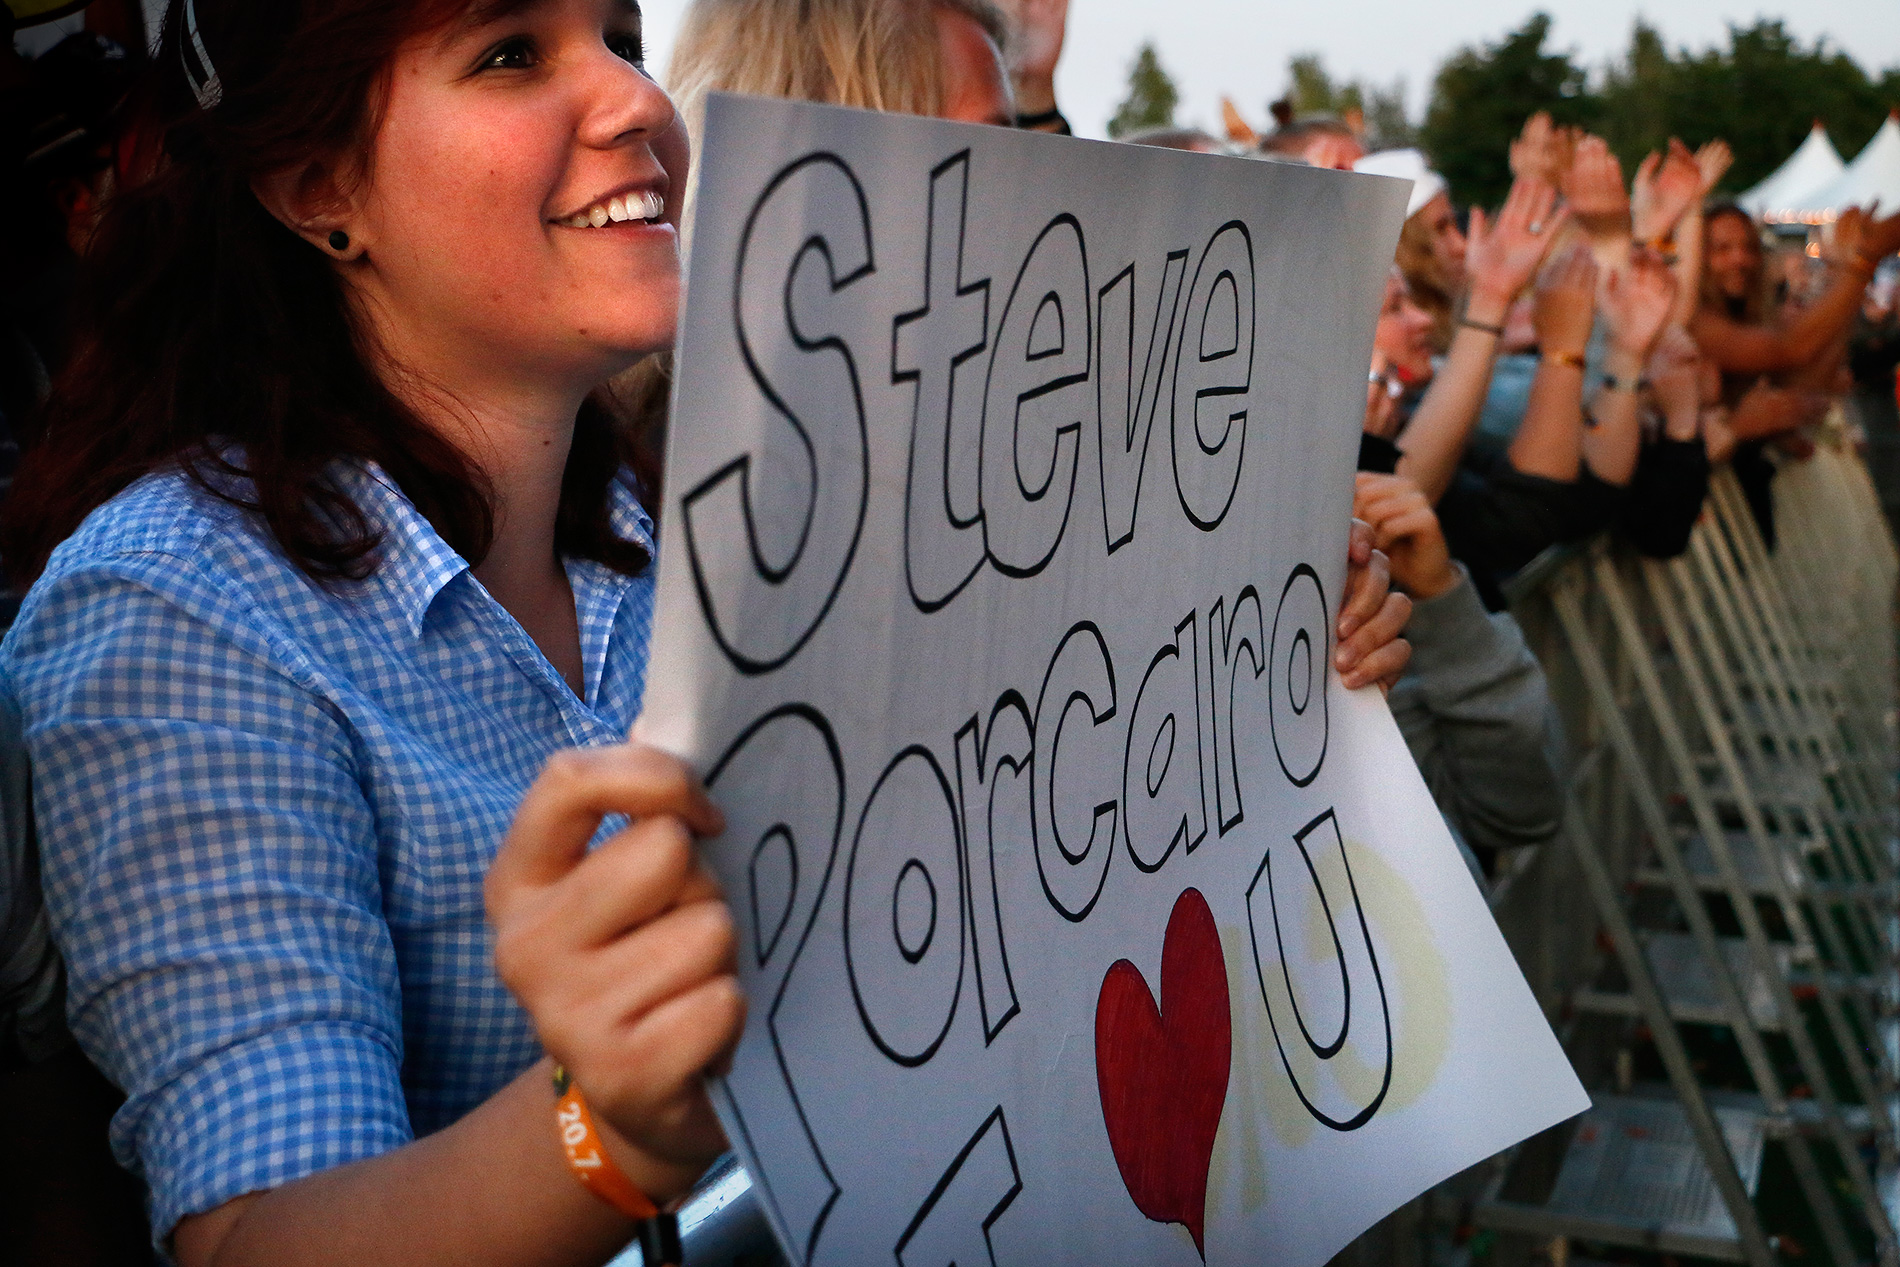 A fan expressing her affection for Steve. Picture: Tony Öhberg for Finland Today